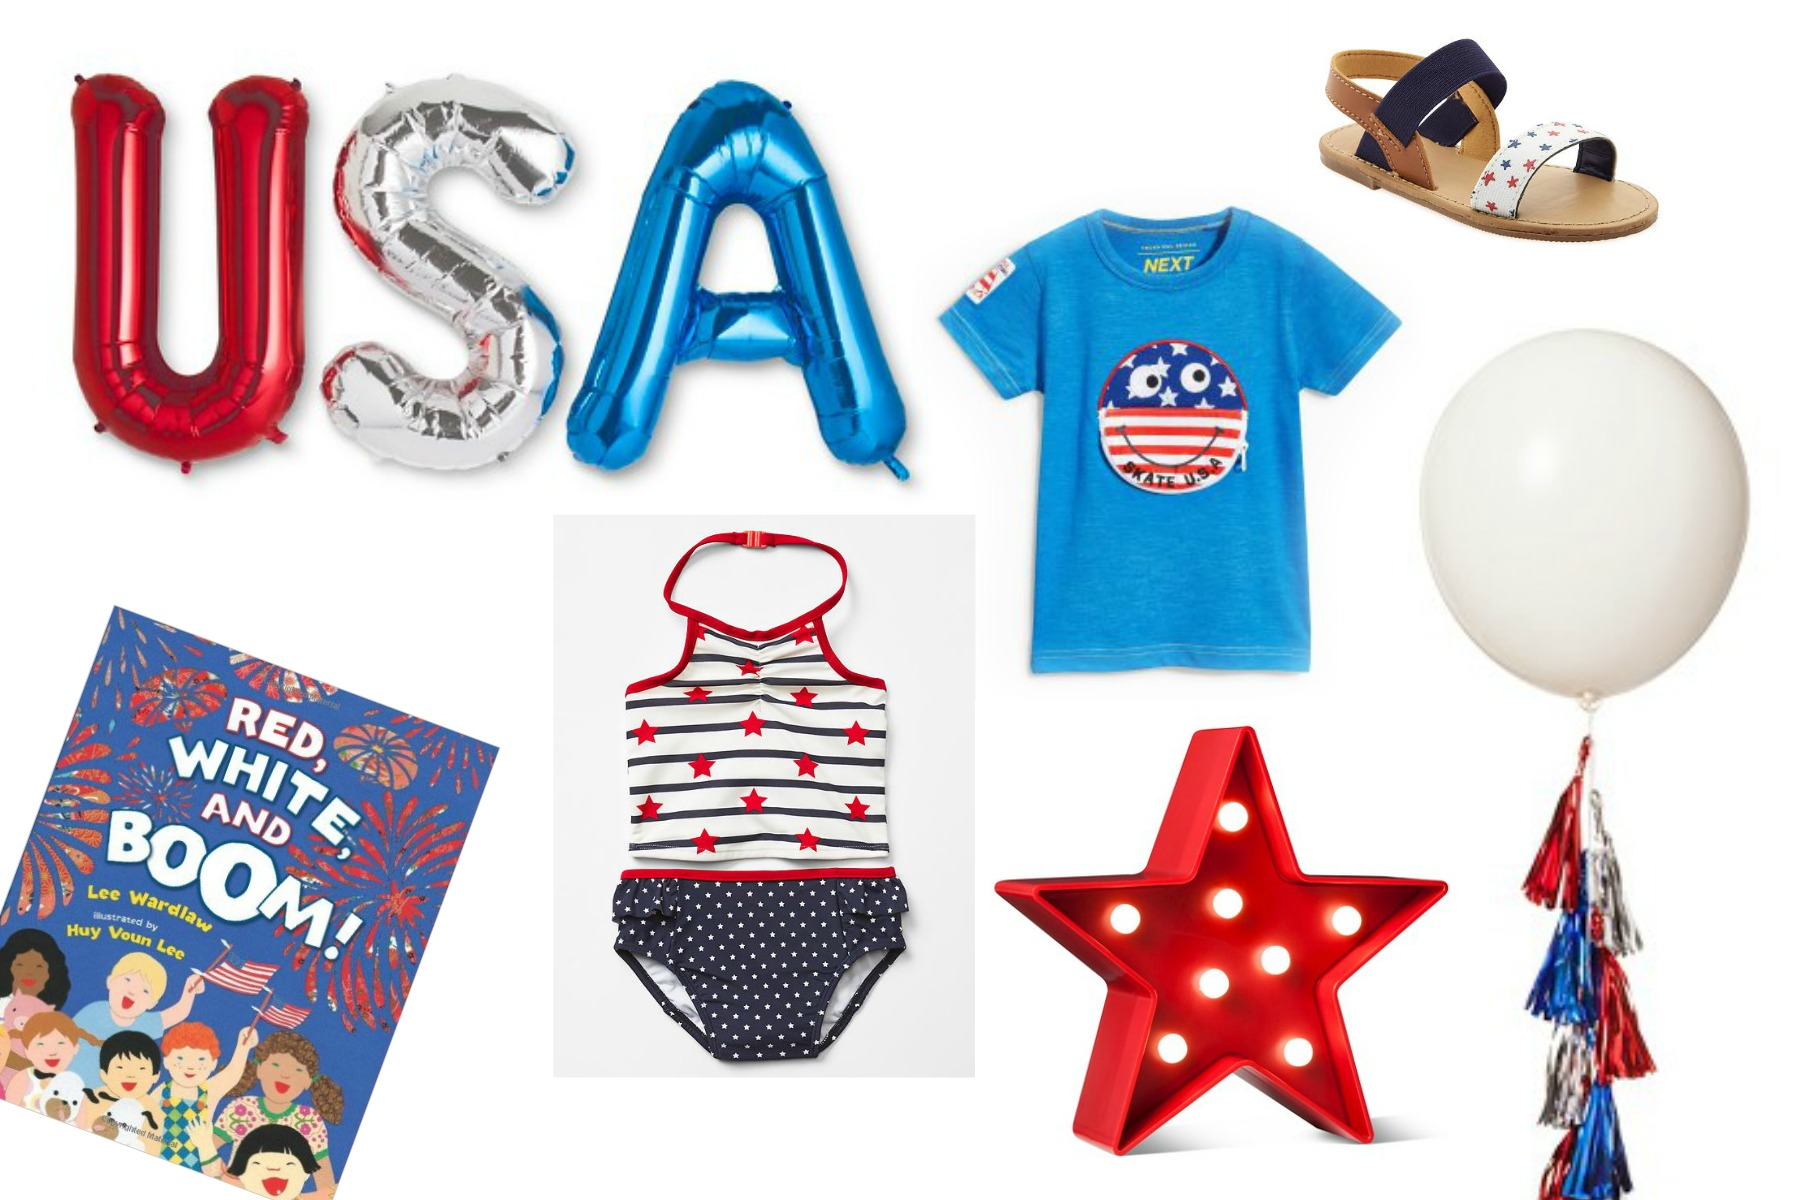 Red, White and Blue Favorites: My Patriotic Picks